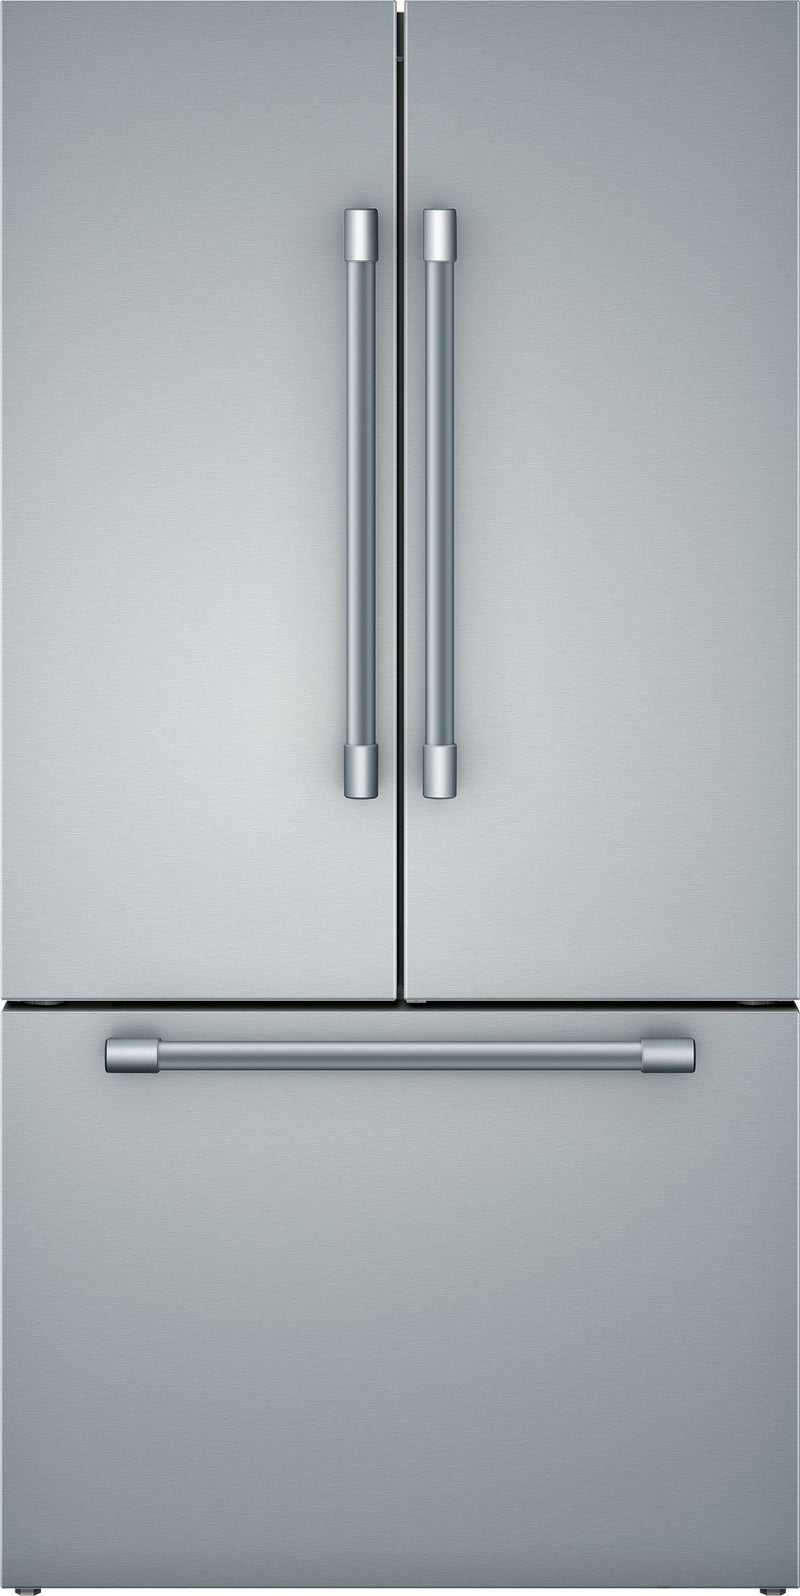 Bosch 800 Series Stainless Steel Counter Depth French Door Refrigerator (21 Cu.Ft) - B36CT81SNS